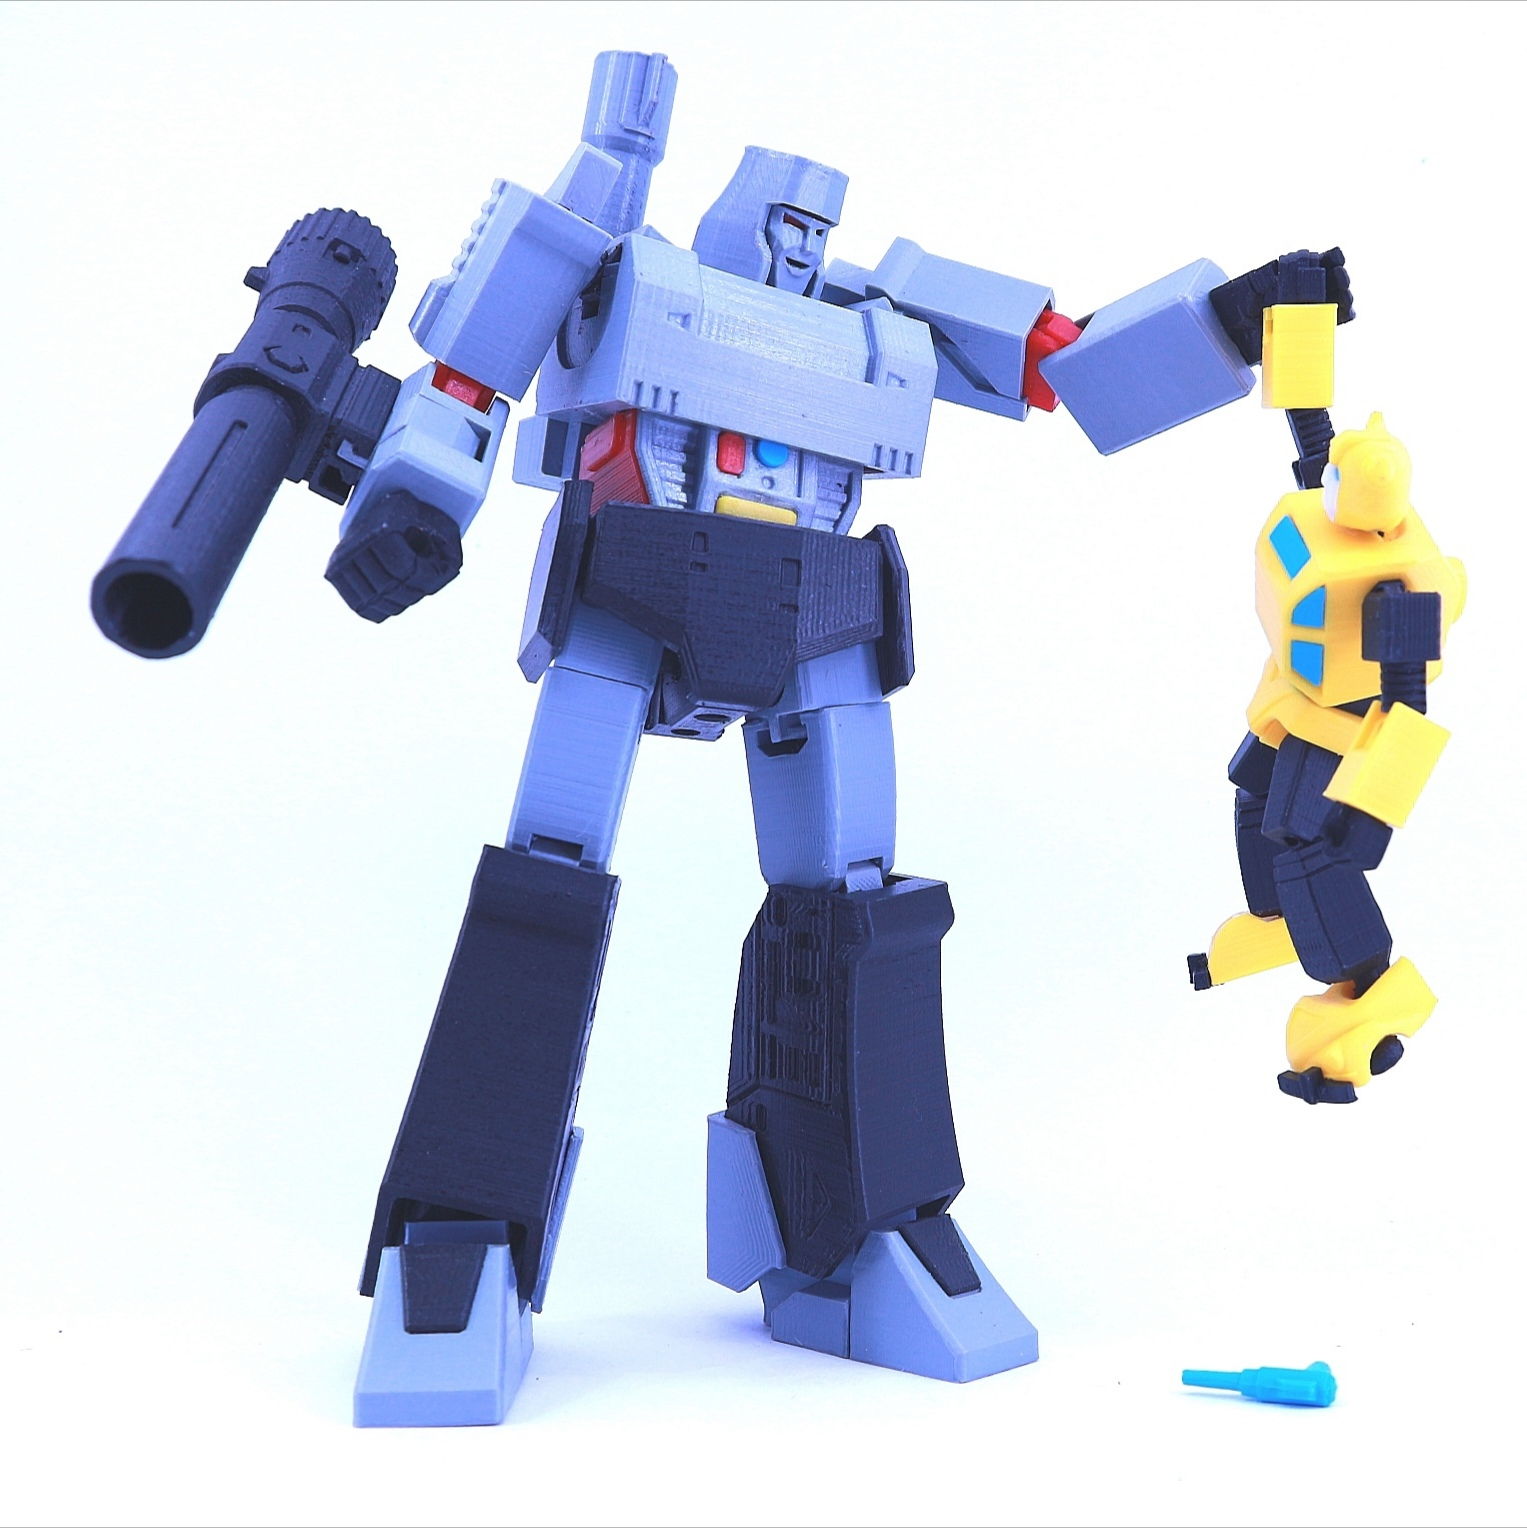 bee7.jpg Download free STL file ARTICULATED G1 TRANSFORMERS BUMBLEBEE - NO SUPPORT • 3D printing model, Toymakr3D